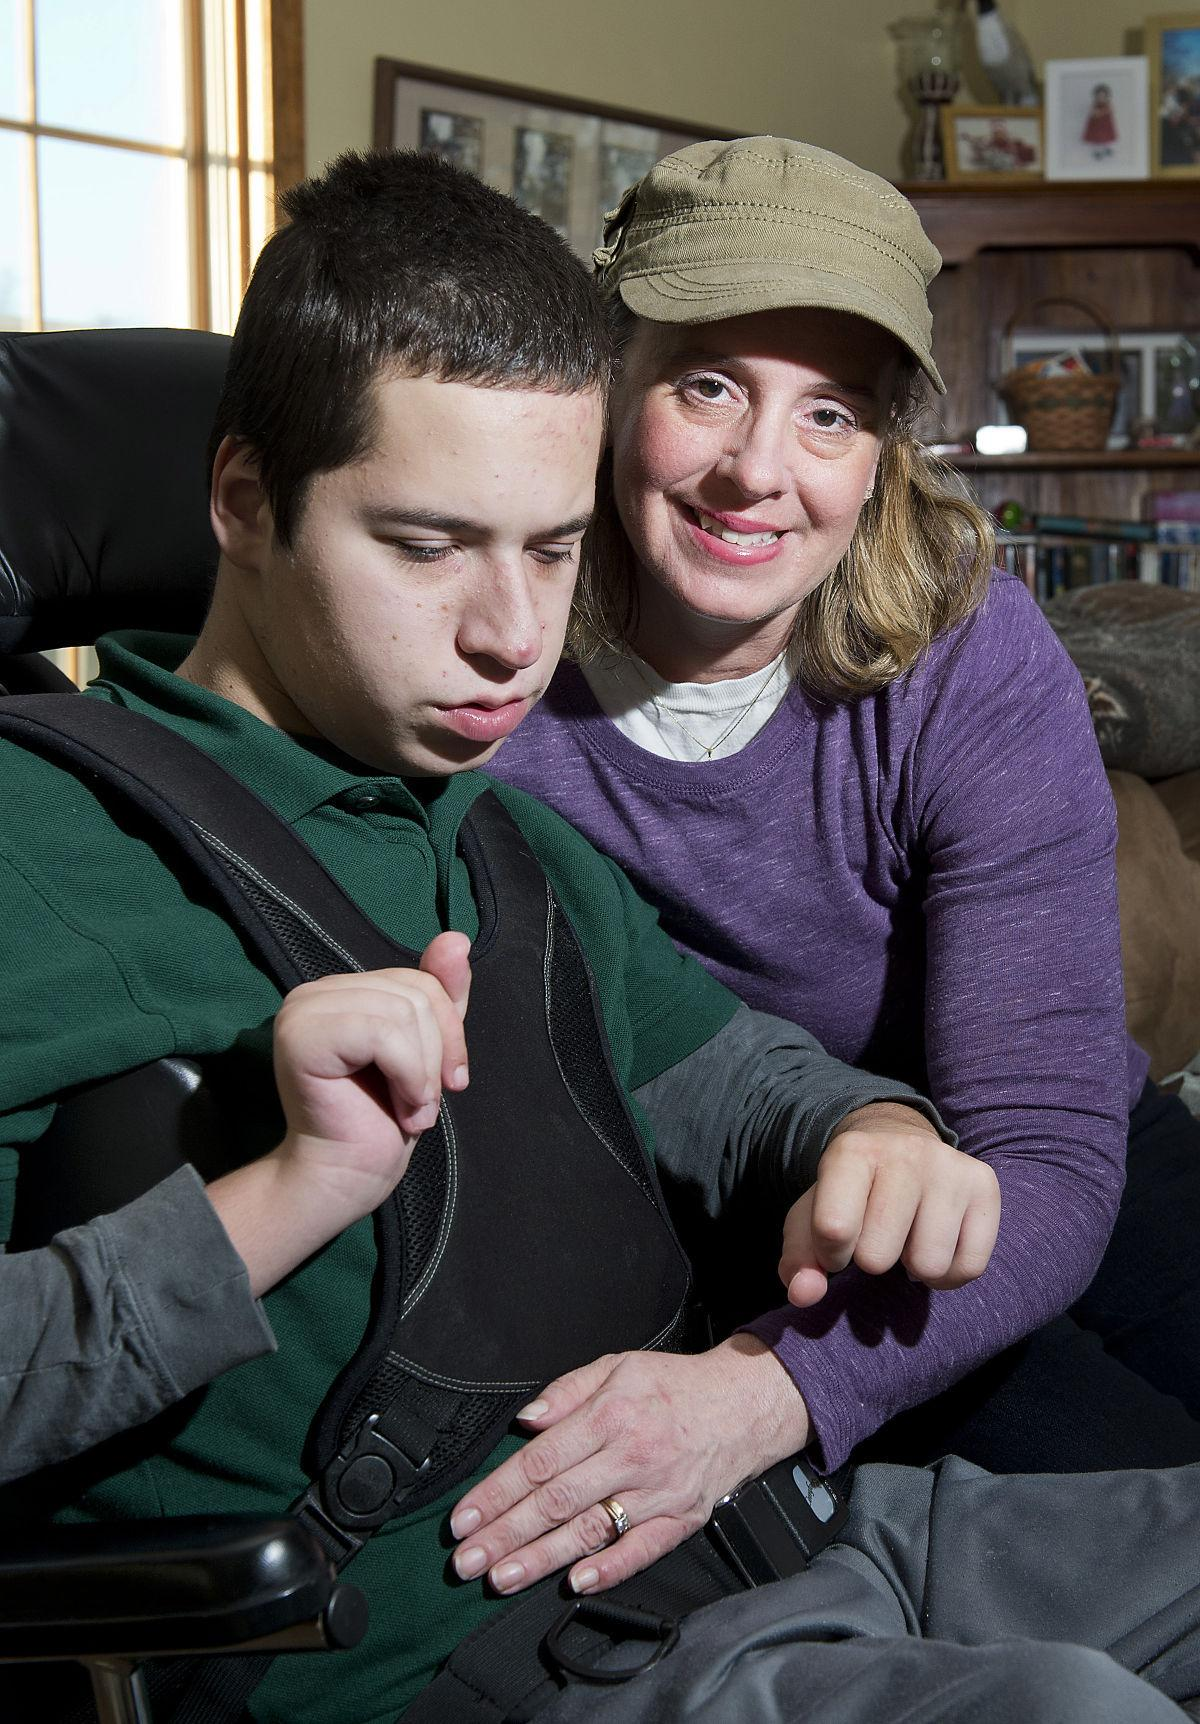 frederick county families grapple with rare epileptic